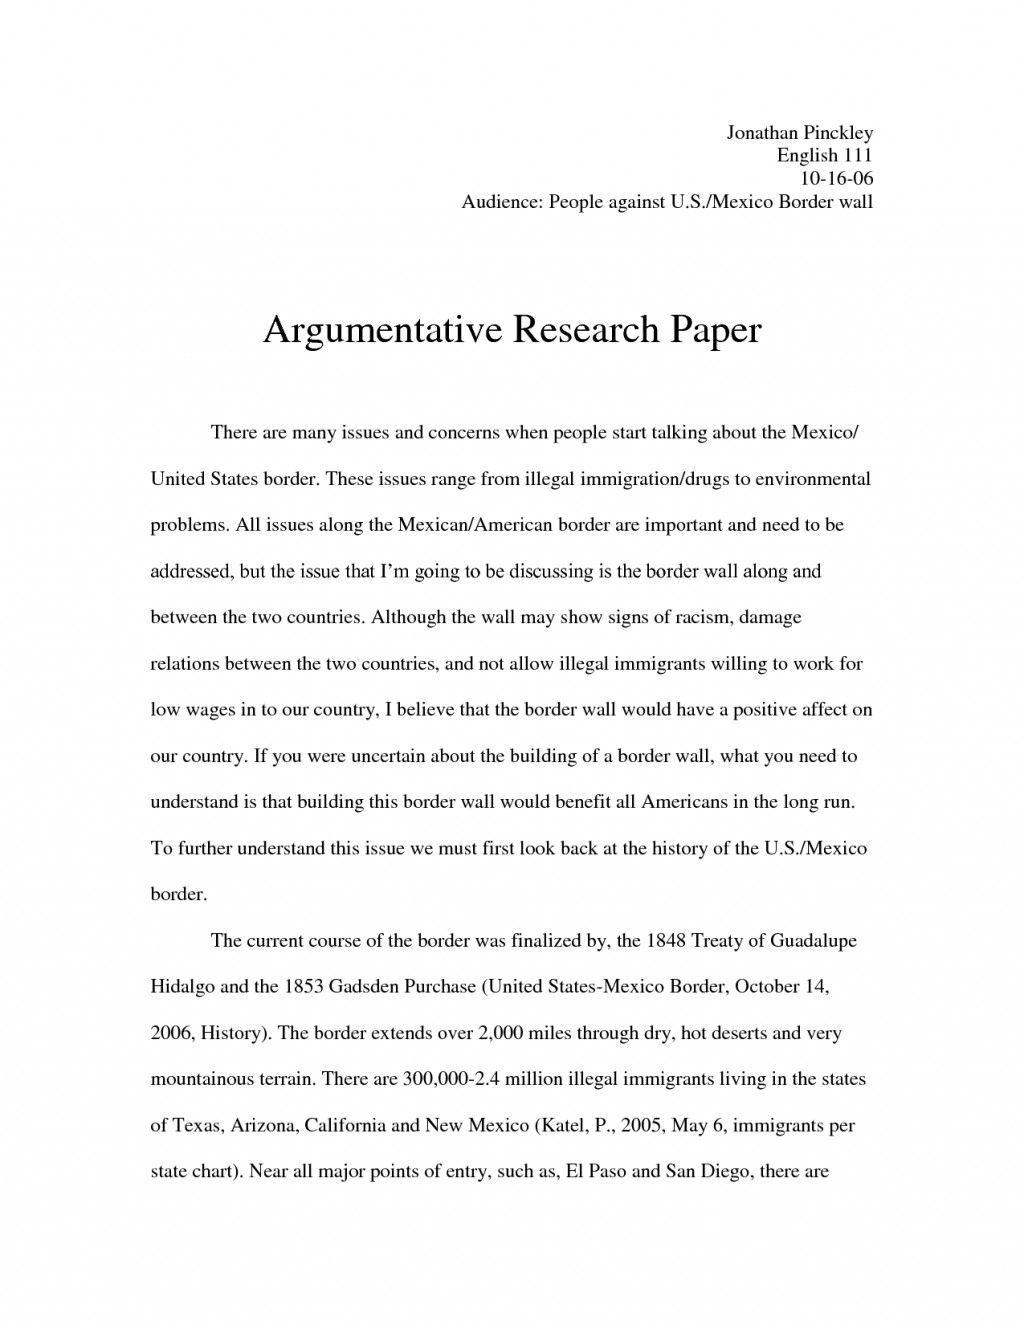 016 Research Paper Uncategorized Debate20y Argumentative Thesis High School Topics Sentence Starters Outline Worksheet Structure20 For Striking An Medical Easy Essay Large